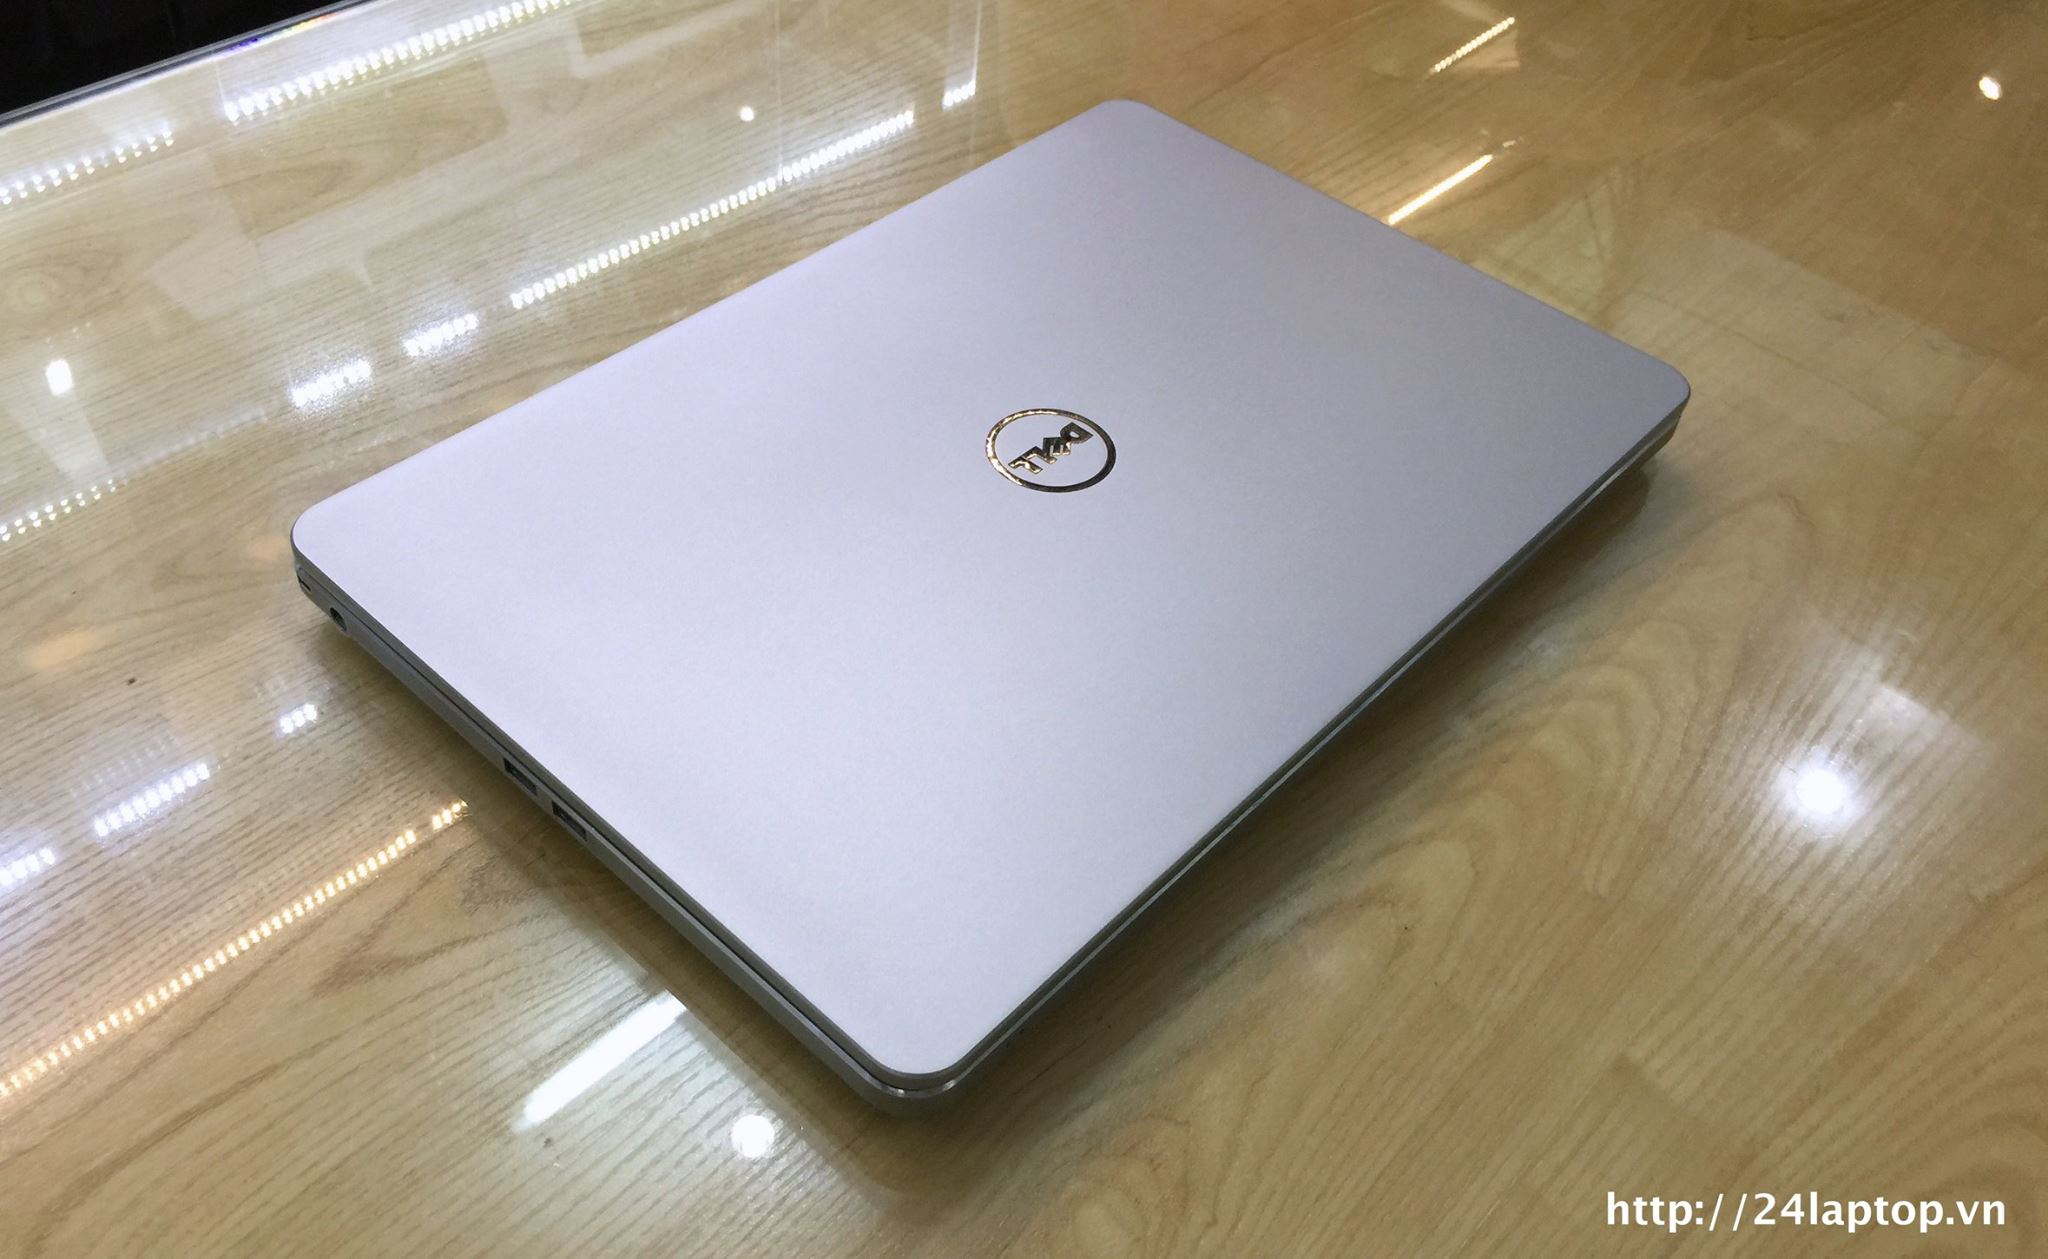 Laptop series 7000 Dell Inspiron 7537_2.jpg